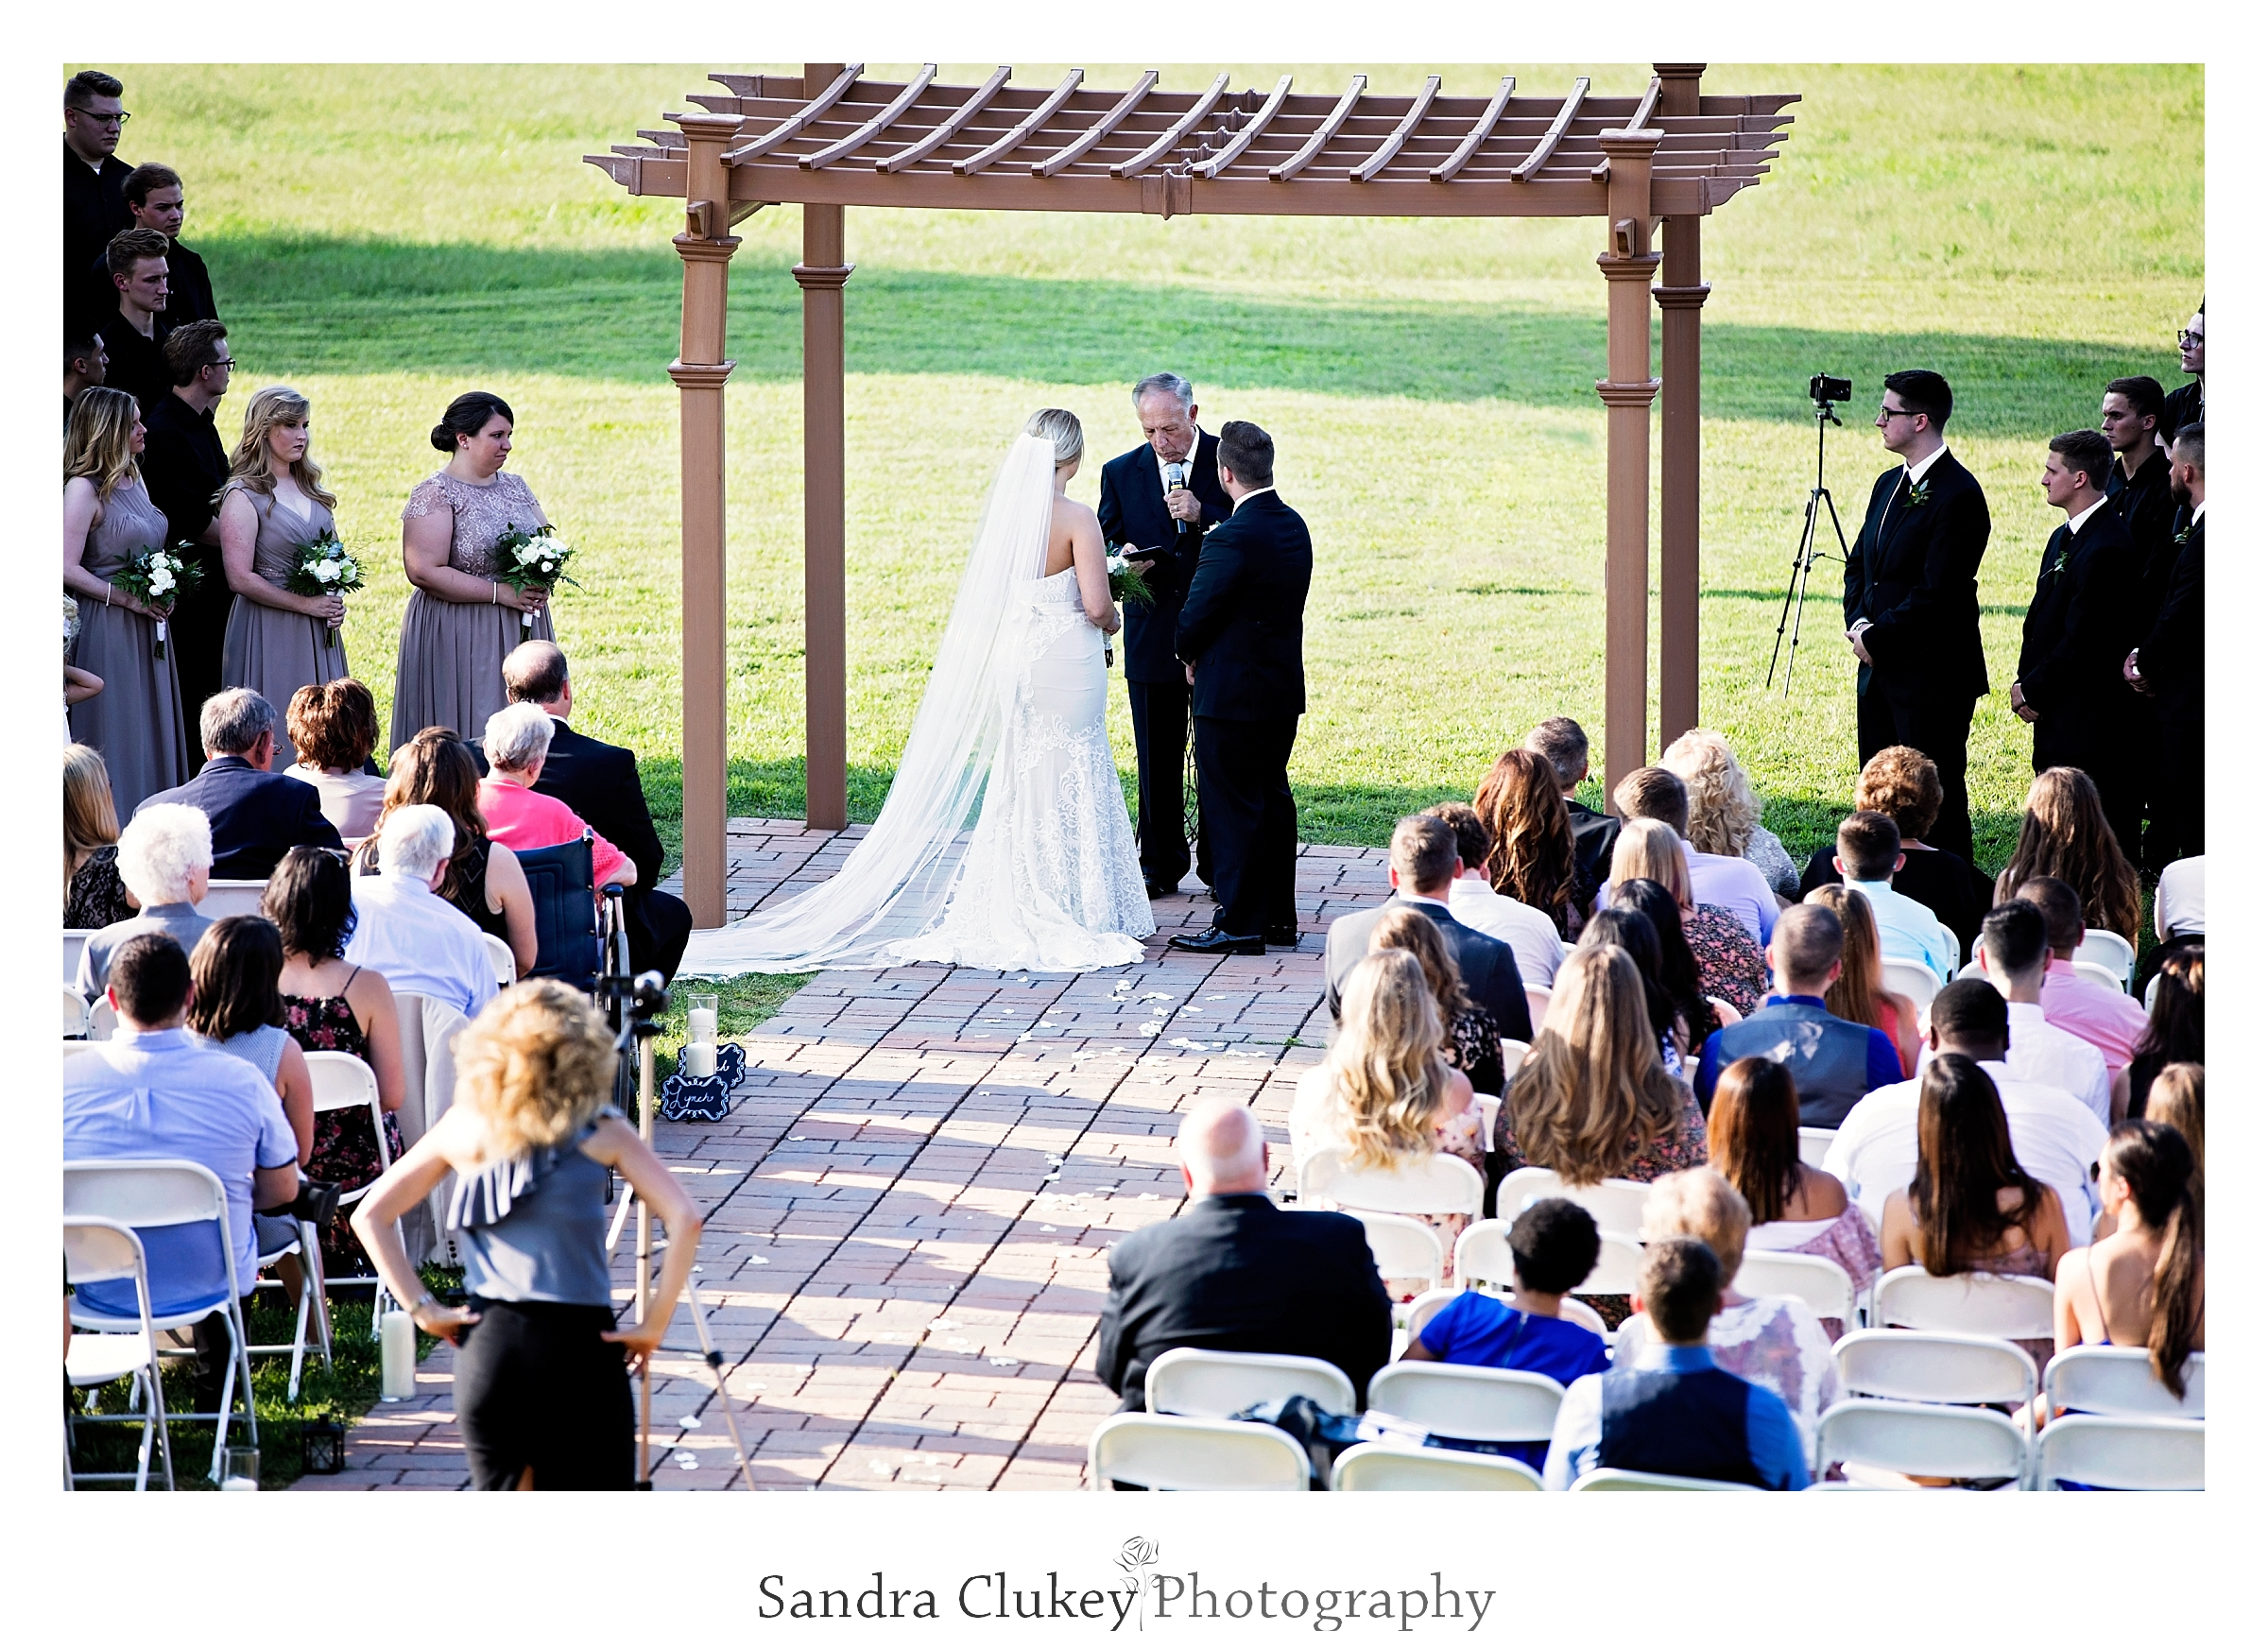 Tennessee RiverPlace Venue wedding ceremony.